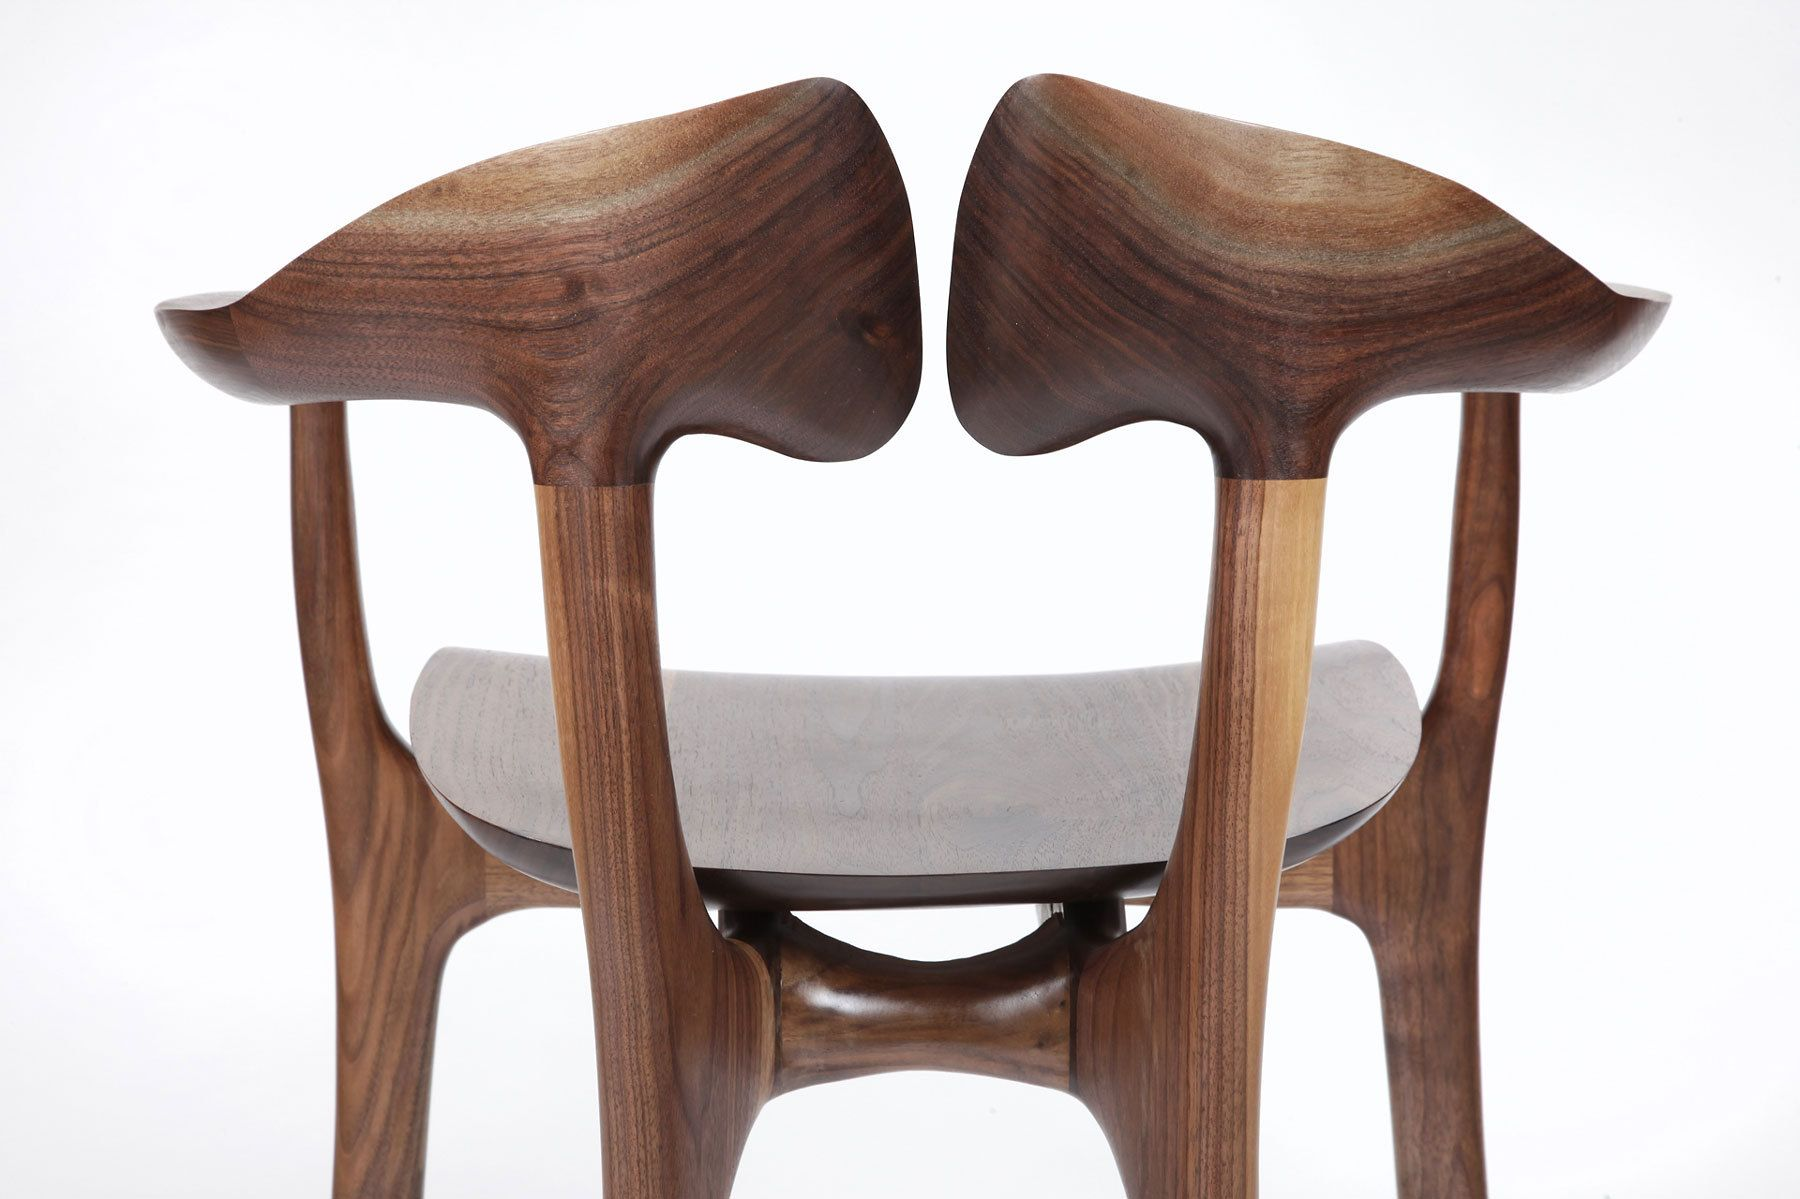 Swallowtail barstool - back detail